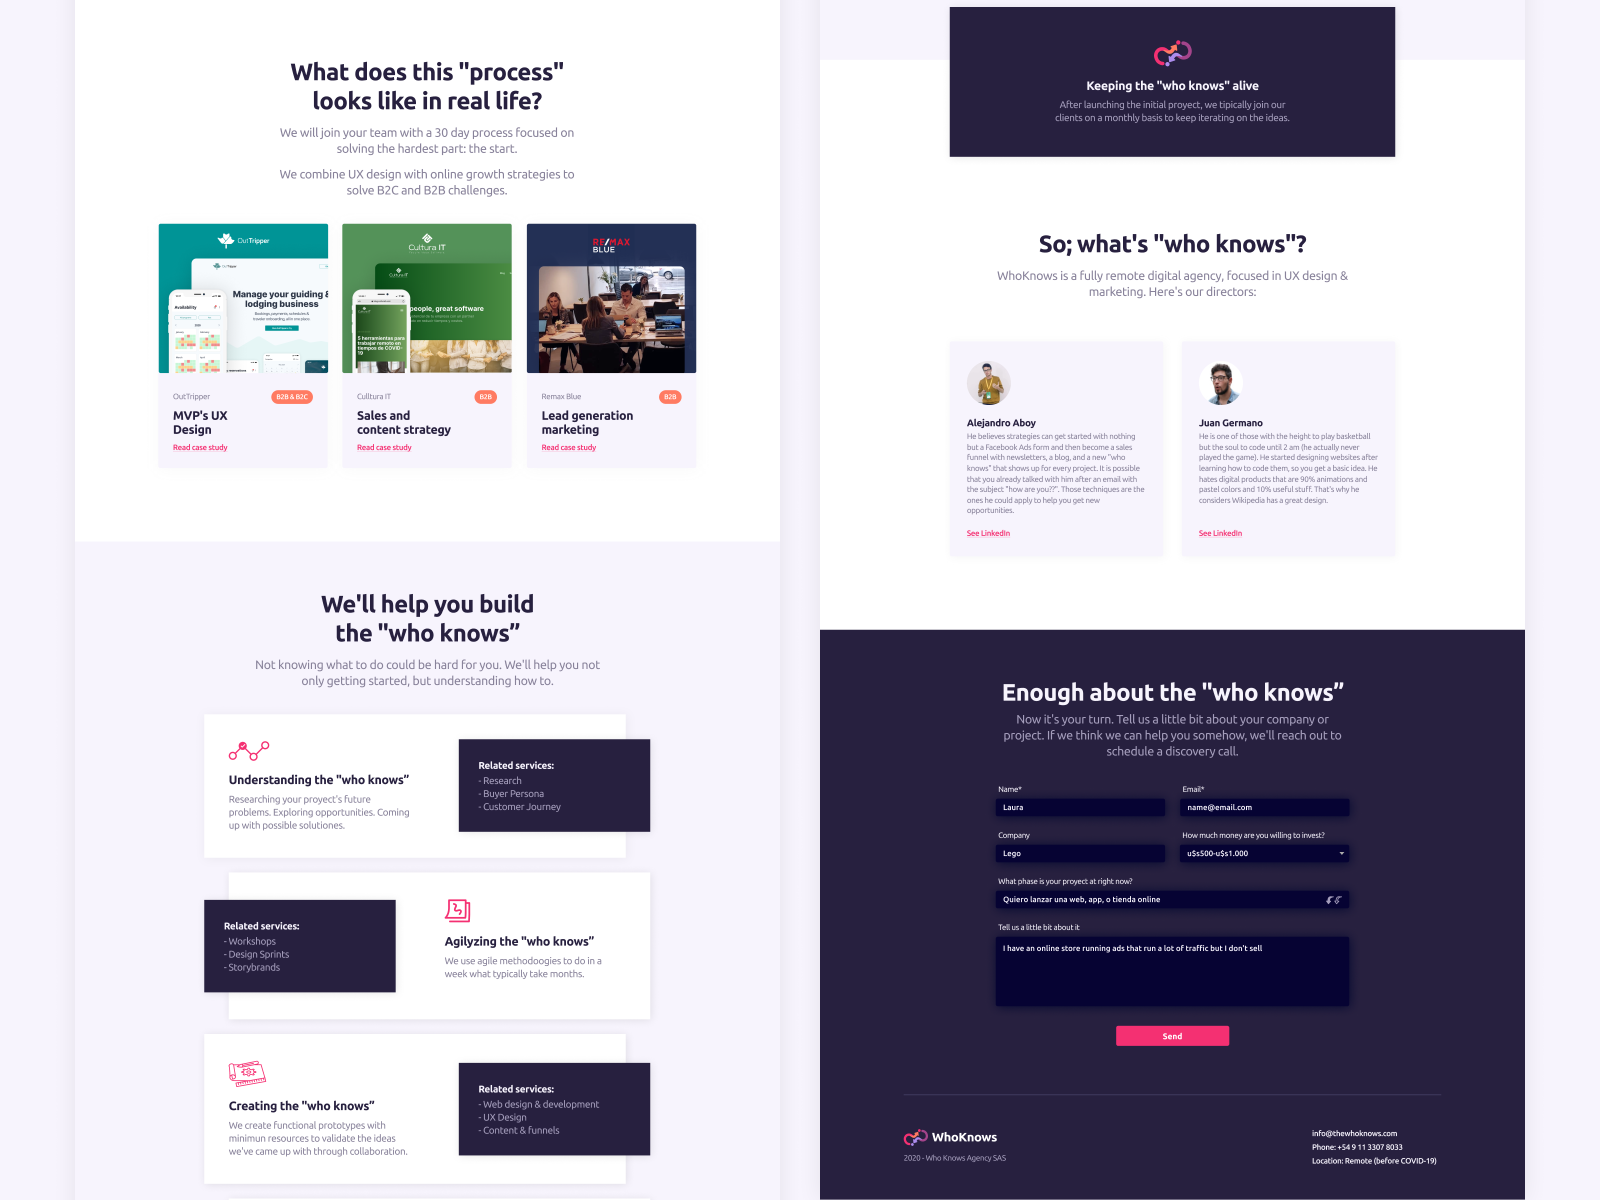 Landing Page With Some Storytelling By Juan Germano On Dribbble